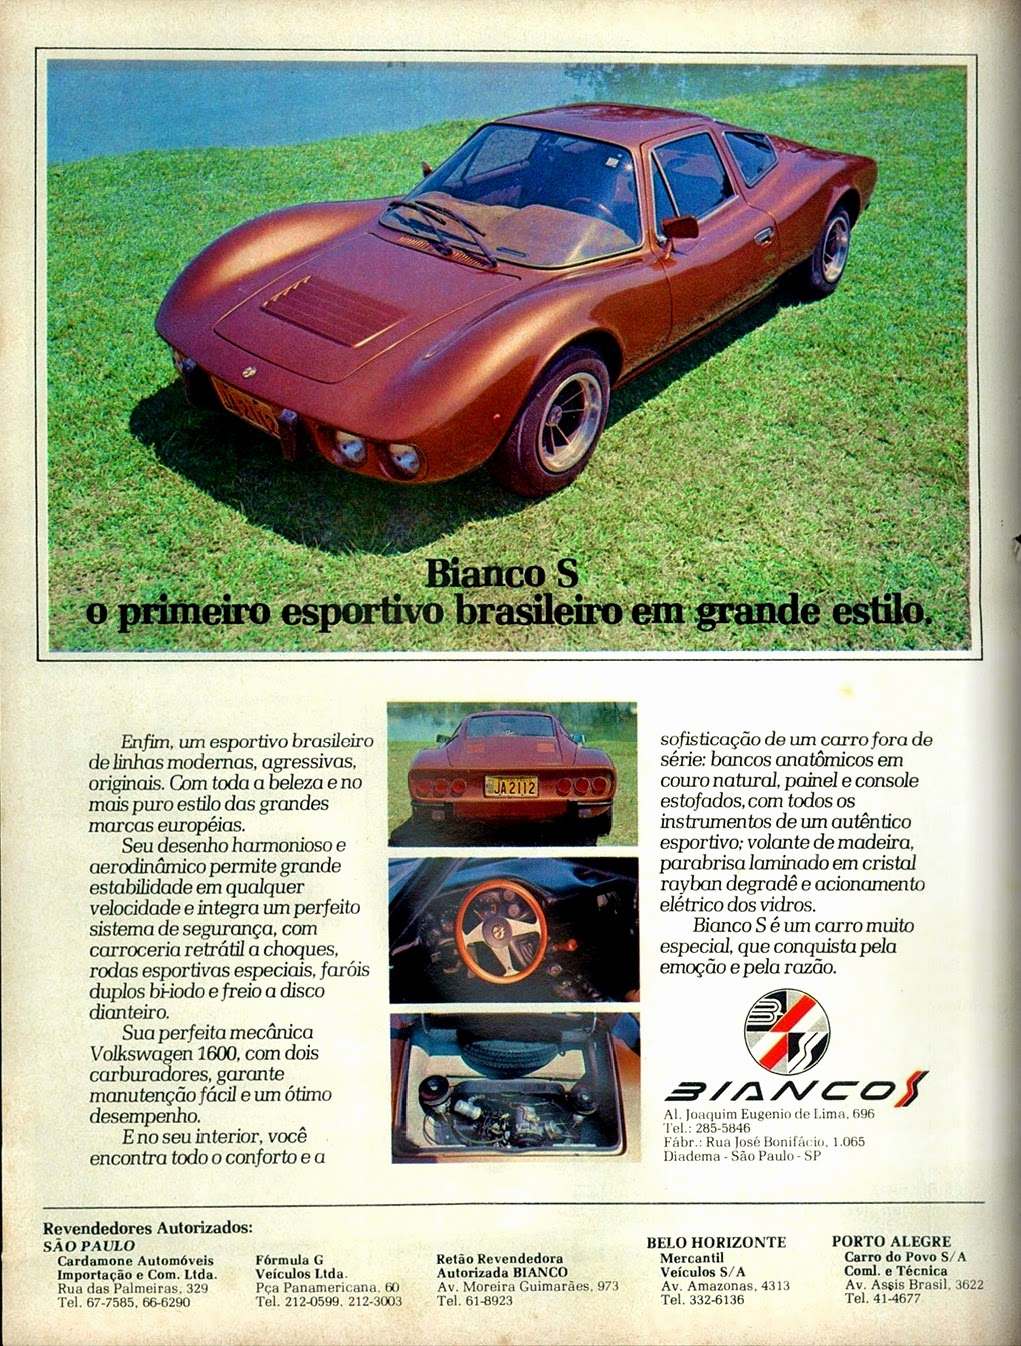 reclame de carros anos 70. brazilian advertising cars in the 70. os anos 70. história da década de 70; Brazil in the 70s; propaganda carros anos 70; Oswaldo Hernandez;